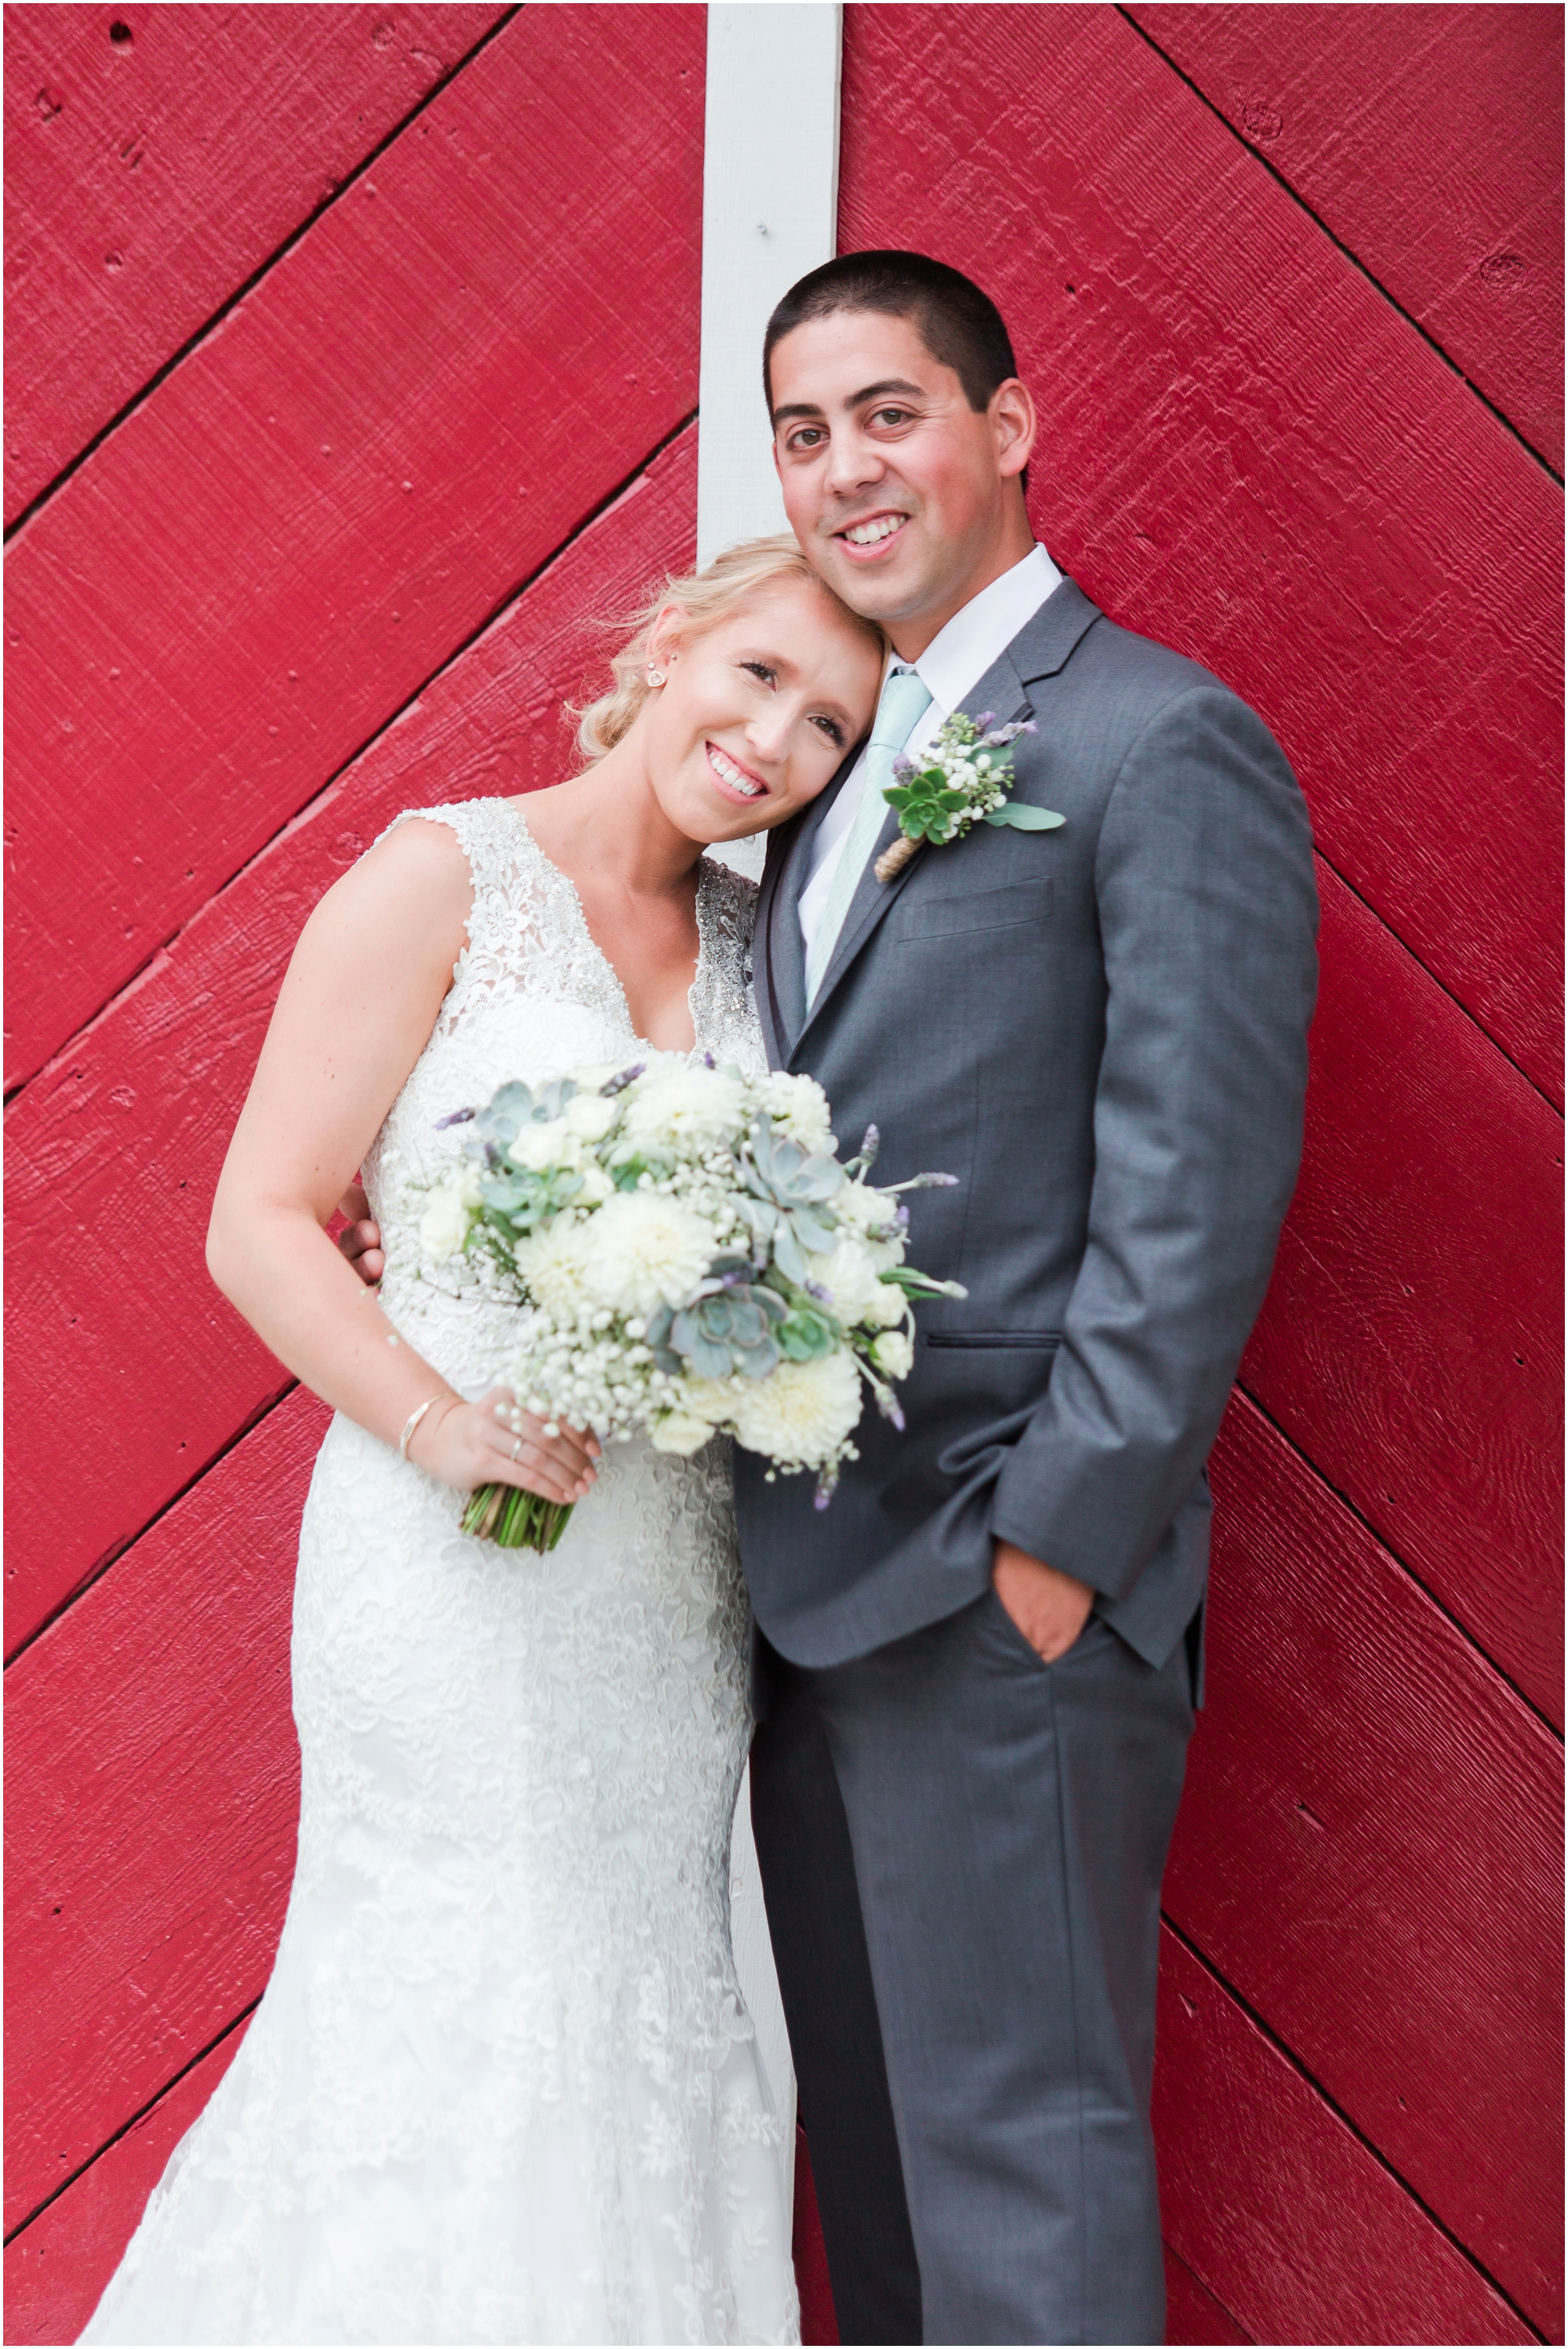 Retzlaff Winery wedding pictures by Briana Calderon Photography_2271.jpg